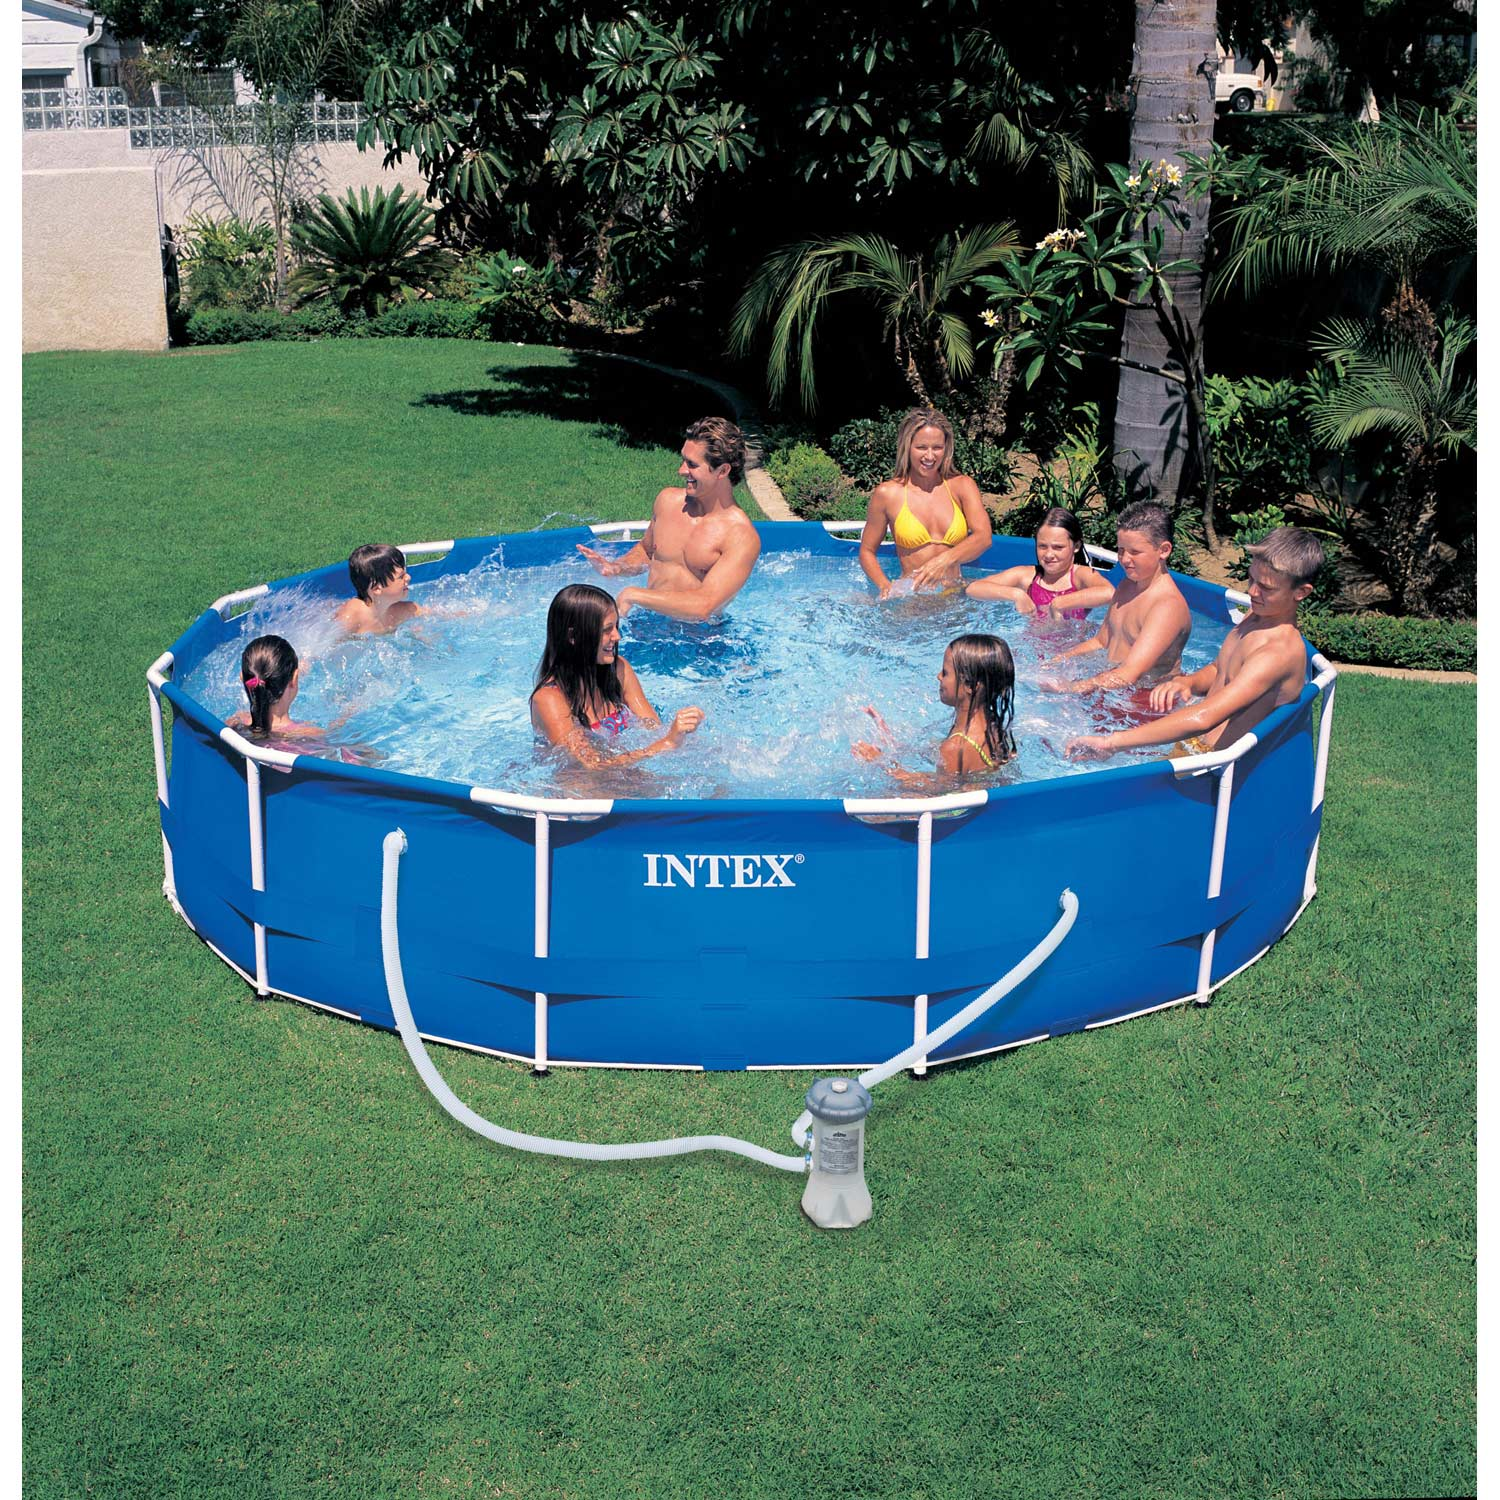 Piscine hors sol autoportante tubulaire metal frame intex for Piscine intex 3 66